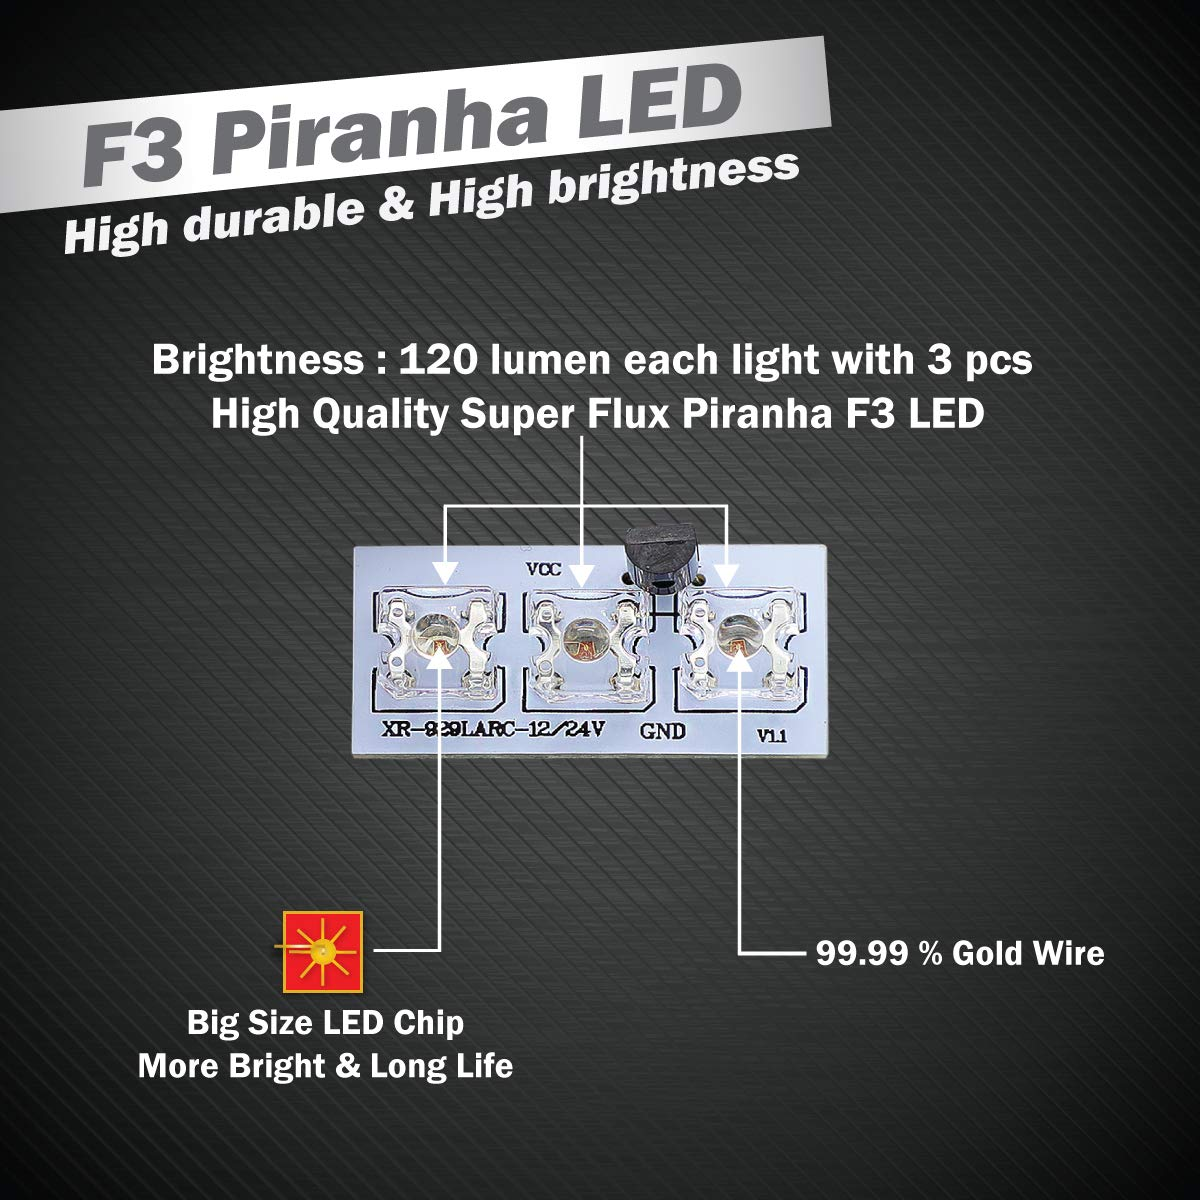 Using Superflux Also Known As Piranha Leds